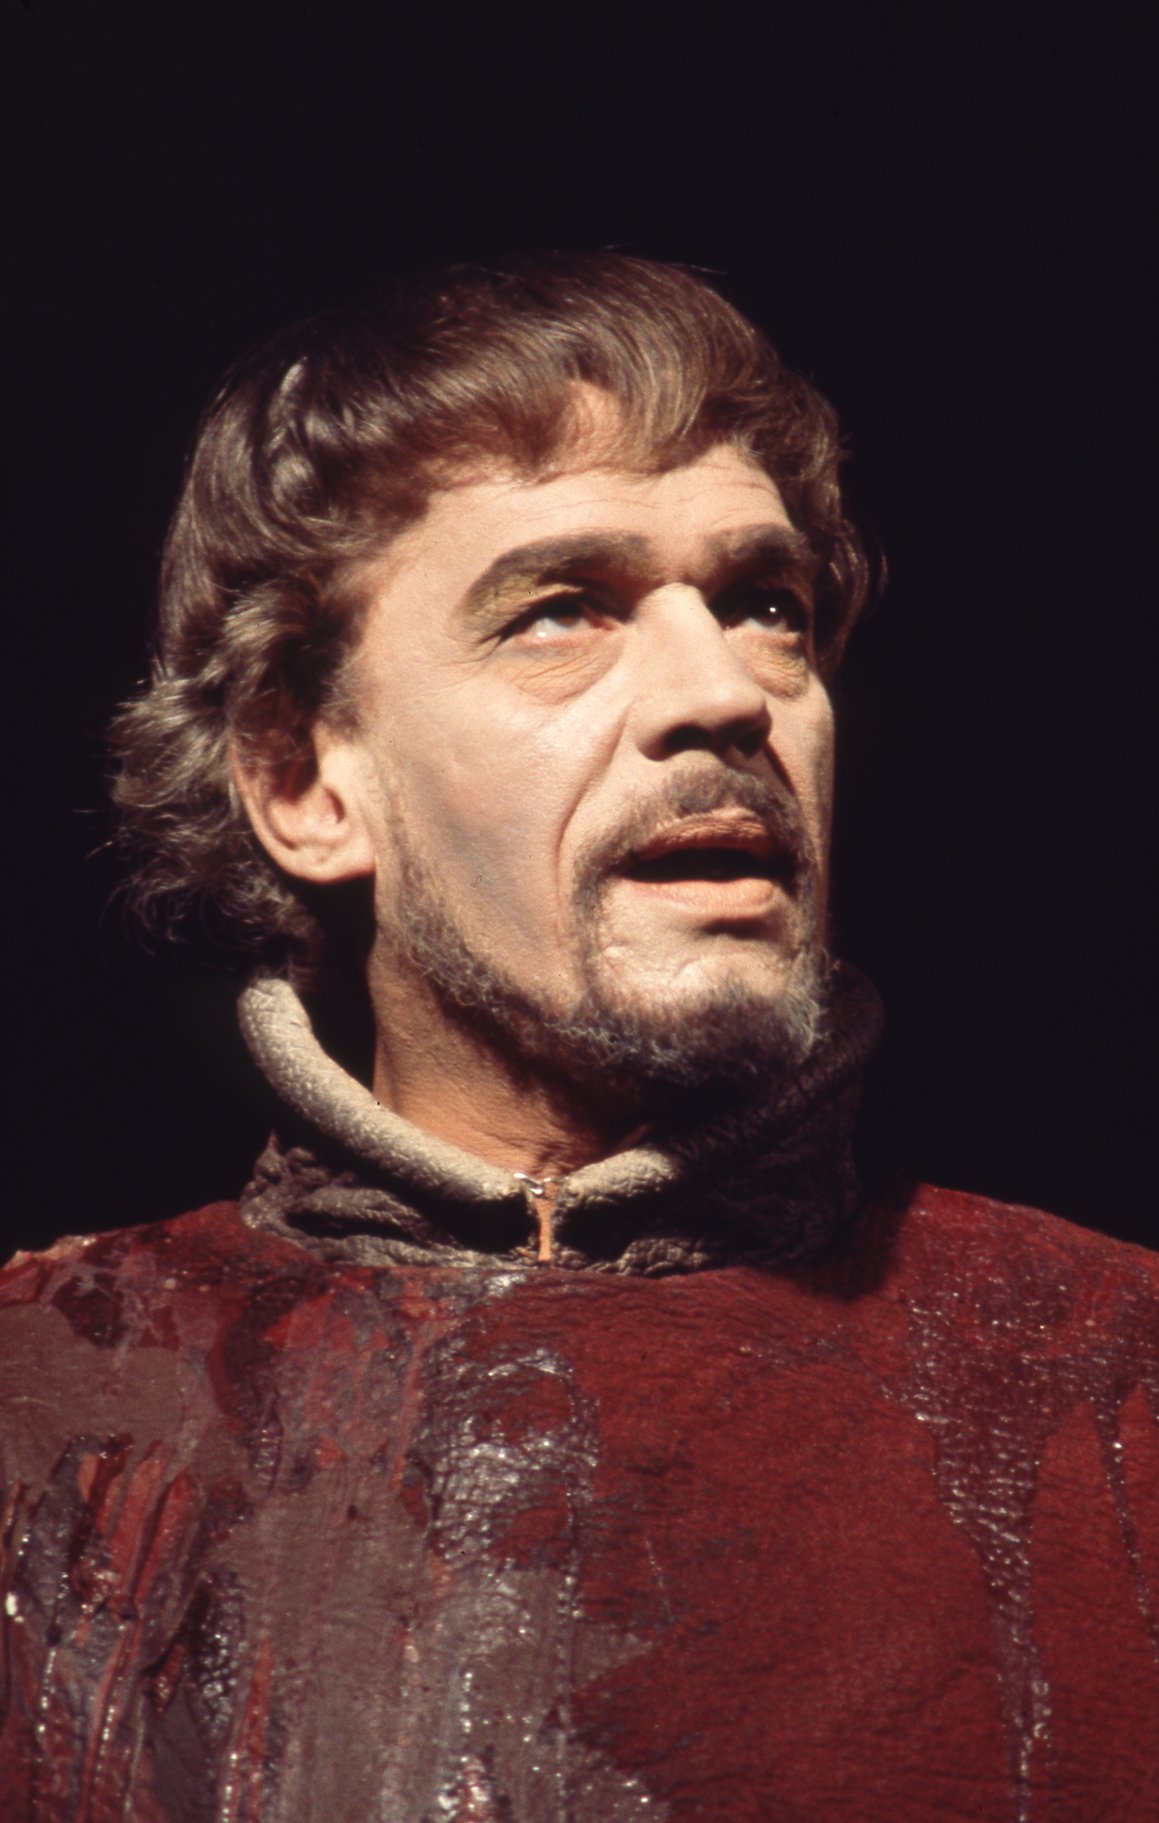 Paul Scofield as Macbeth.